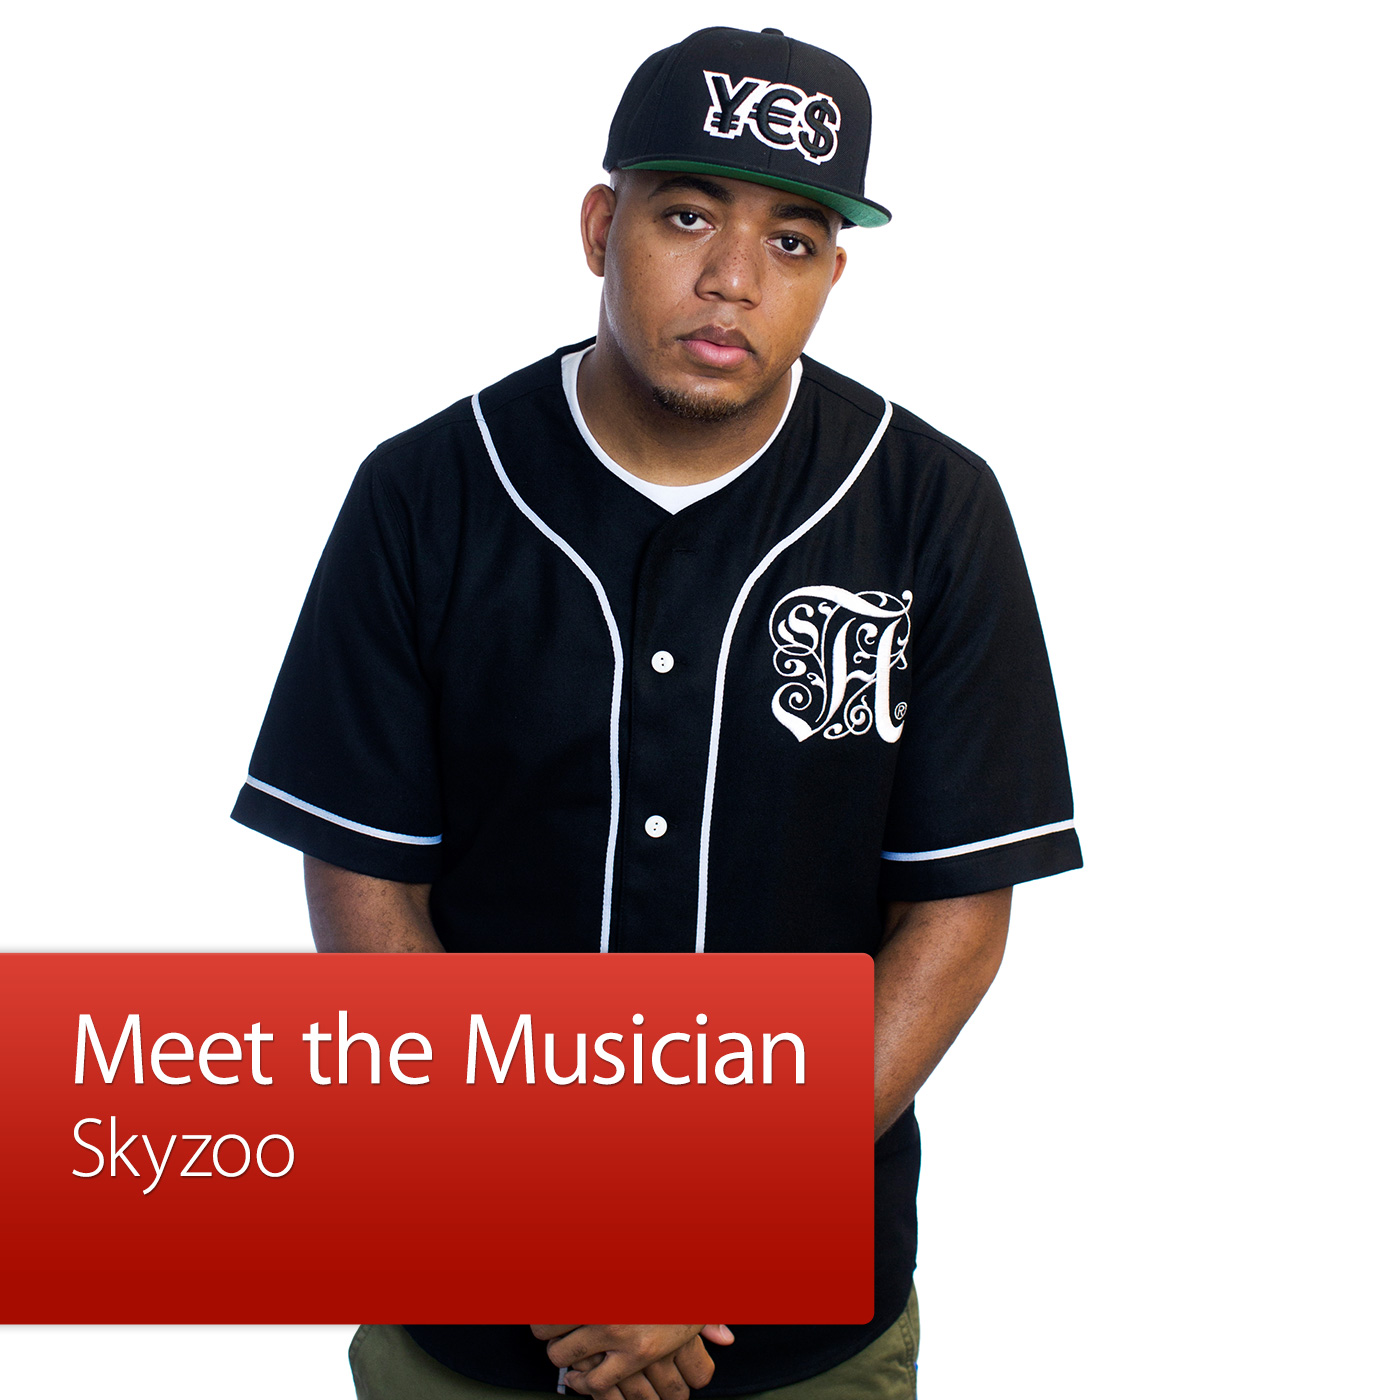 Skyzoo: Meet the Musician